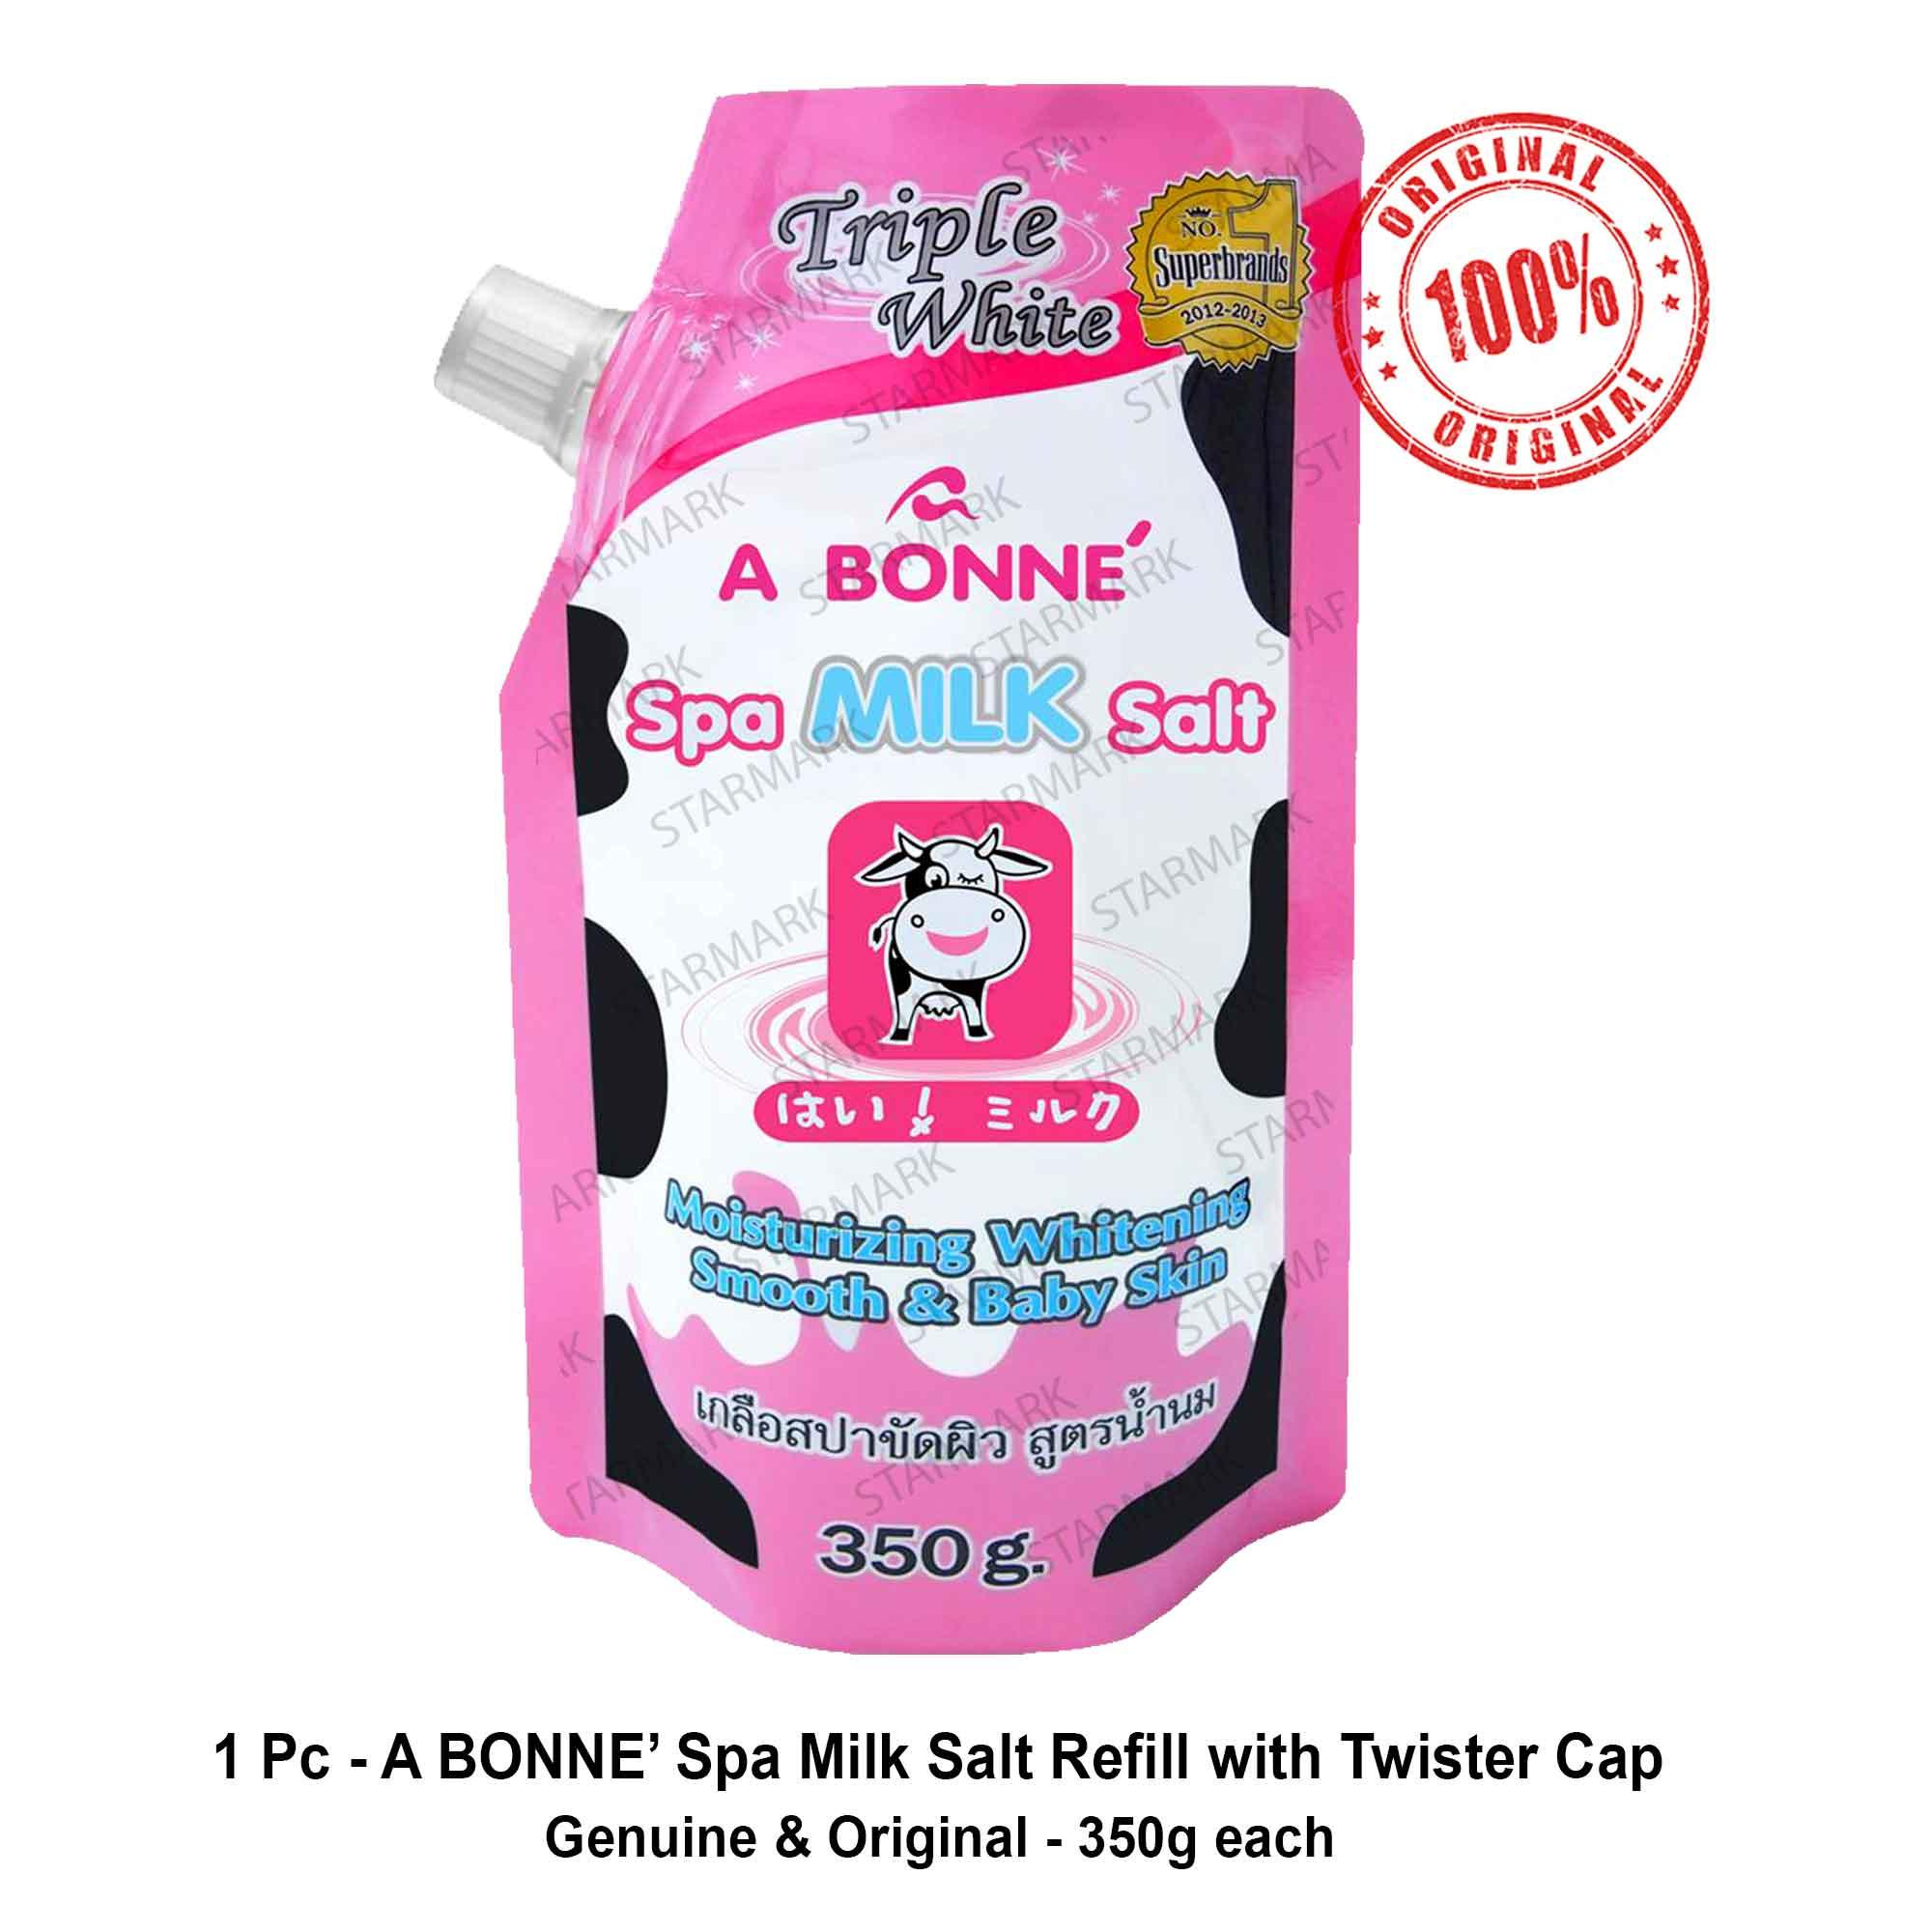 Abonne Spa Milk Salt Regular 350g Each Refill With Twister Cap Salts - A Bonne, Abonne Set Of 1 Pc - Genuine And Original By Starmark Enterprises.